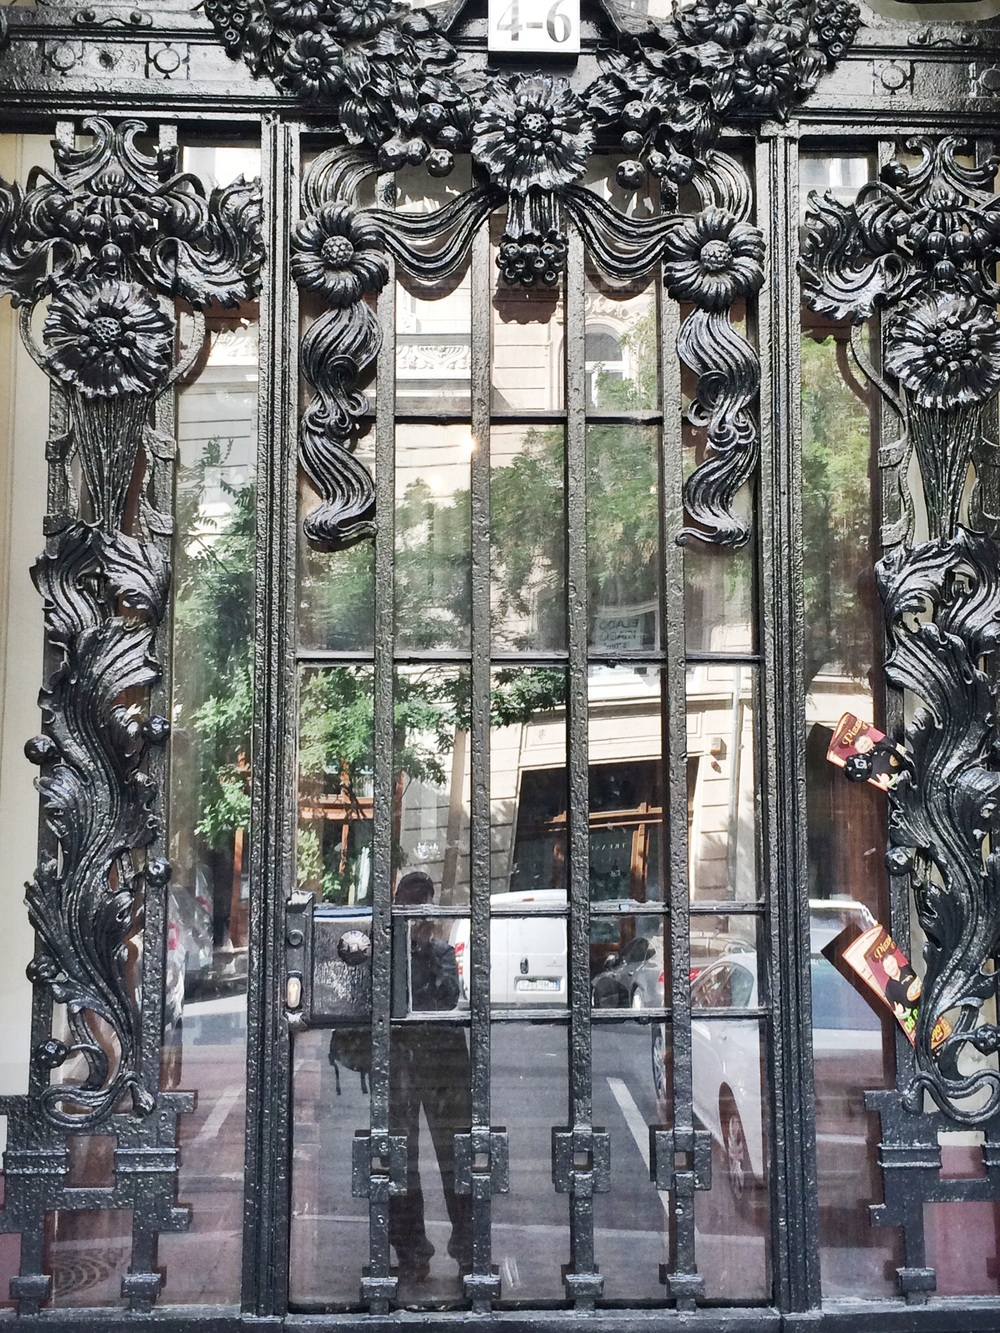 Mirrored, Art Nouveau entry and door.